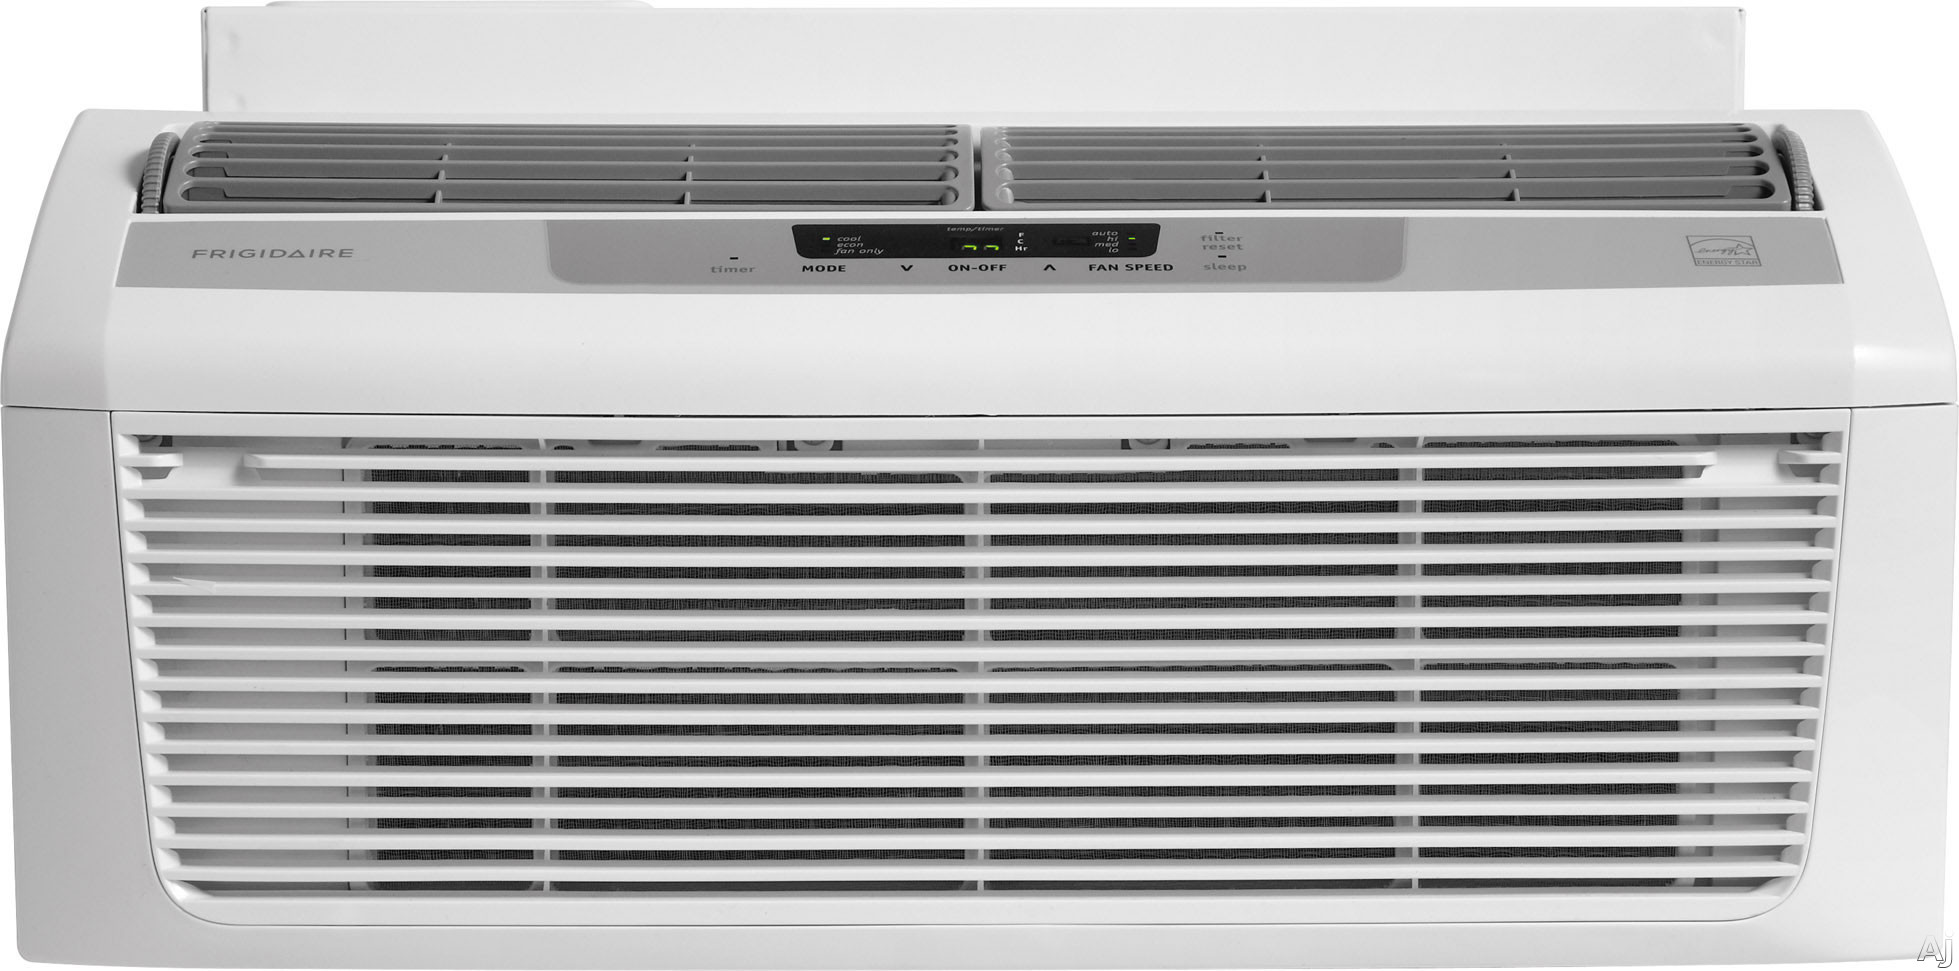 Frigidaire FFRL0633Q1 6,000 BTU Low Profile Window Air Conditioner with 11.2 EER, R-410A Refrigerant, 1.3 Pts/Hr Dehumidification, 250 sq. ft. Cooling Area, Energy Saver and Remote Control FFRL0633Q1